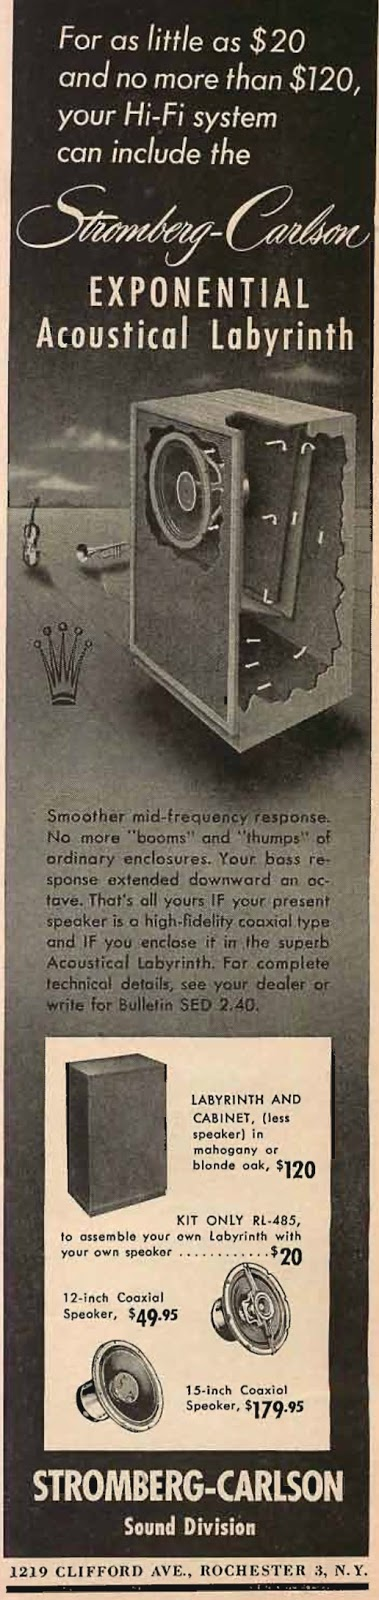 Stromberg Carlson - Exponential Acoustical Labyrinth